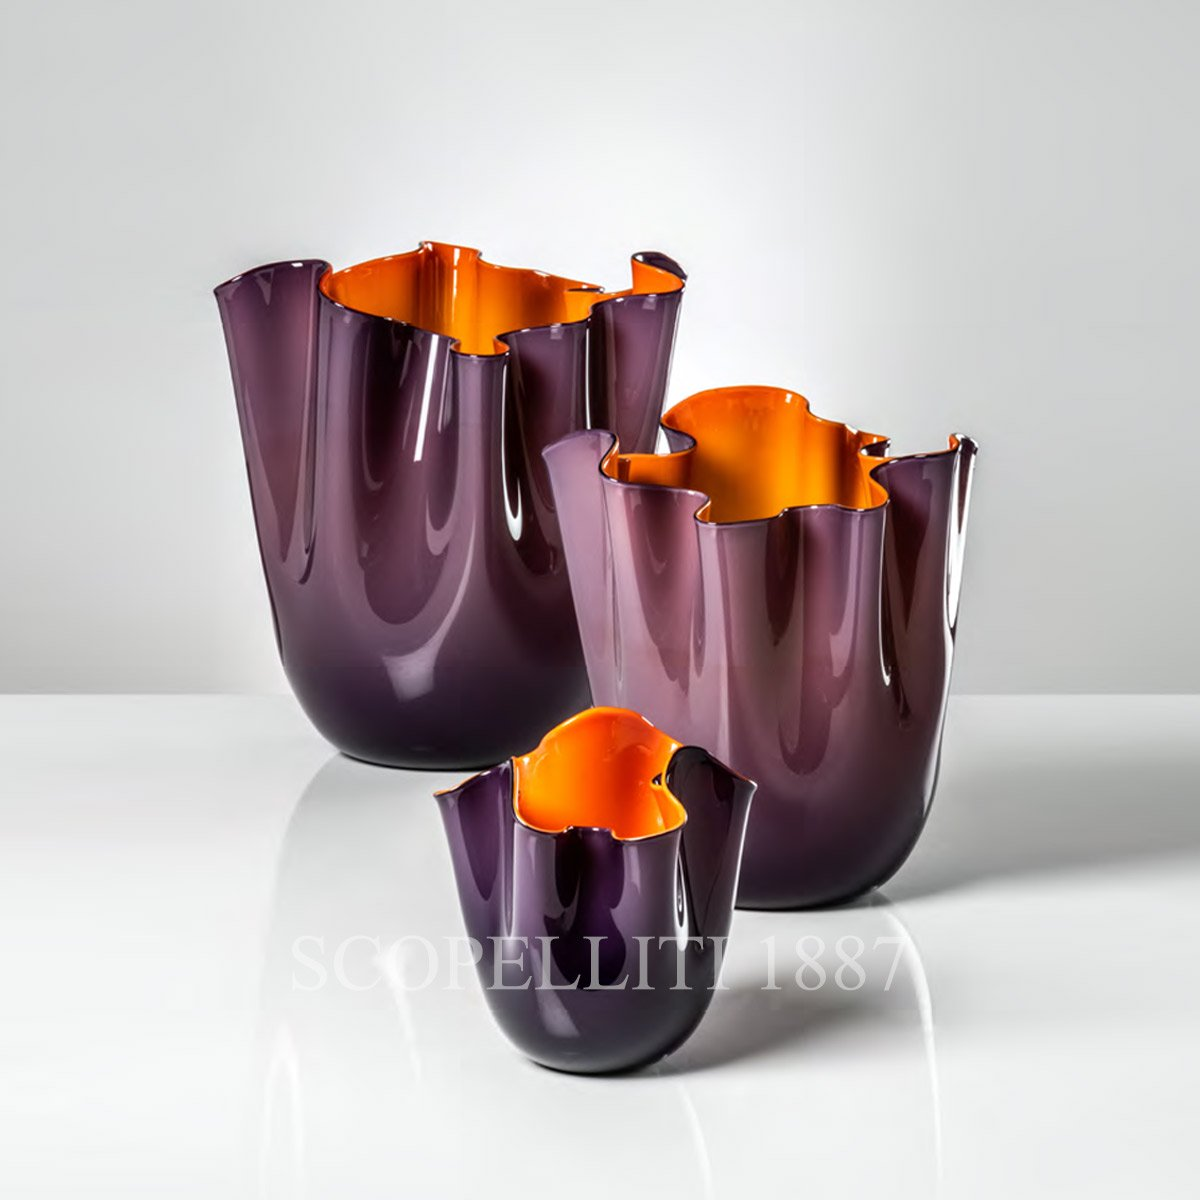 Venini Fazzoletto Vase medium indigo orange 700.02 NEW